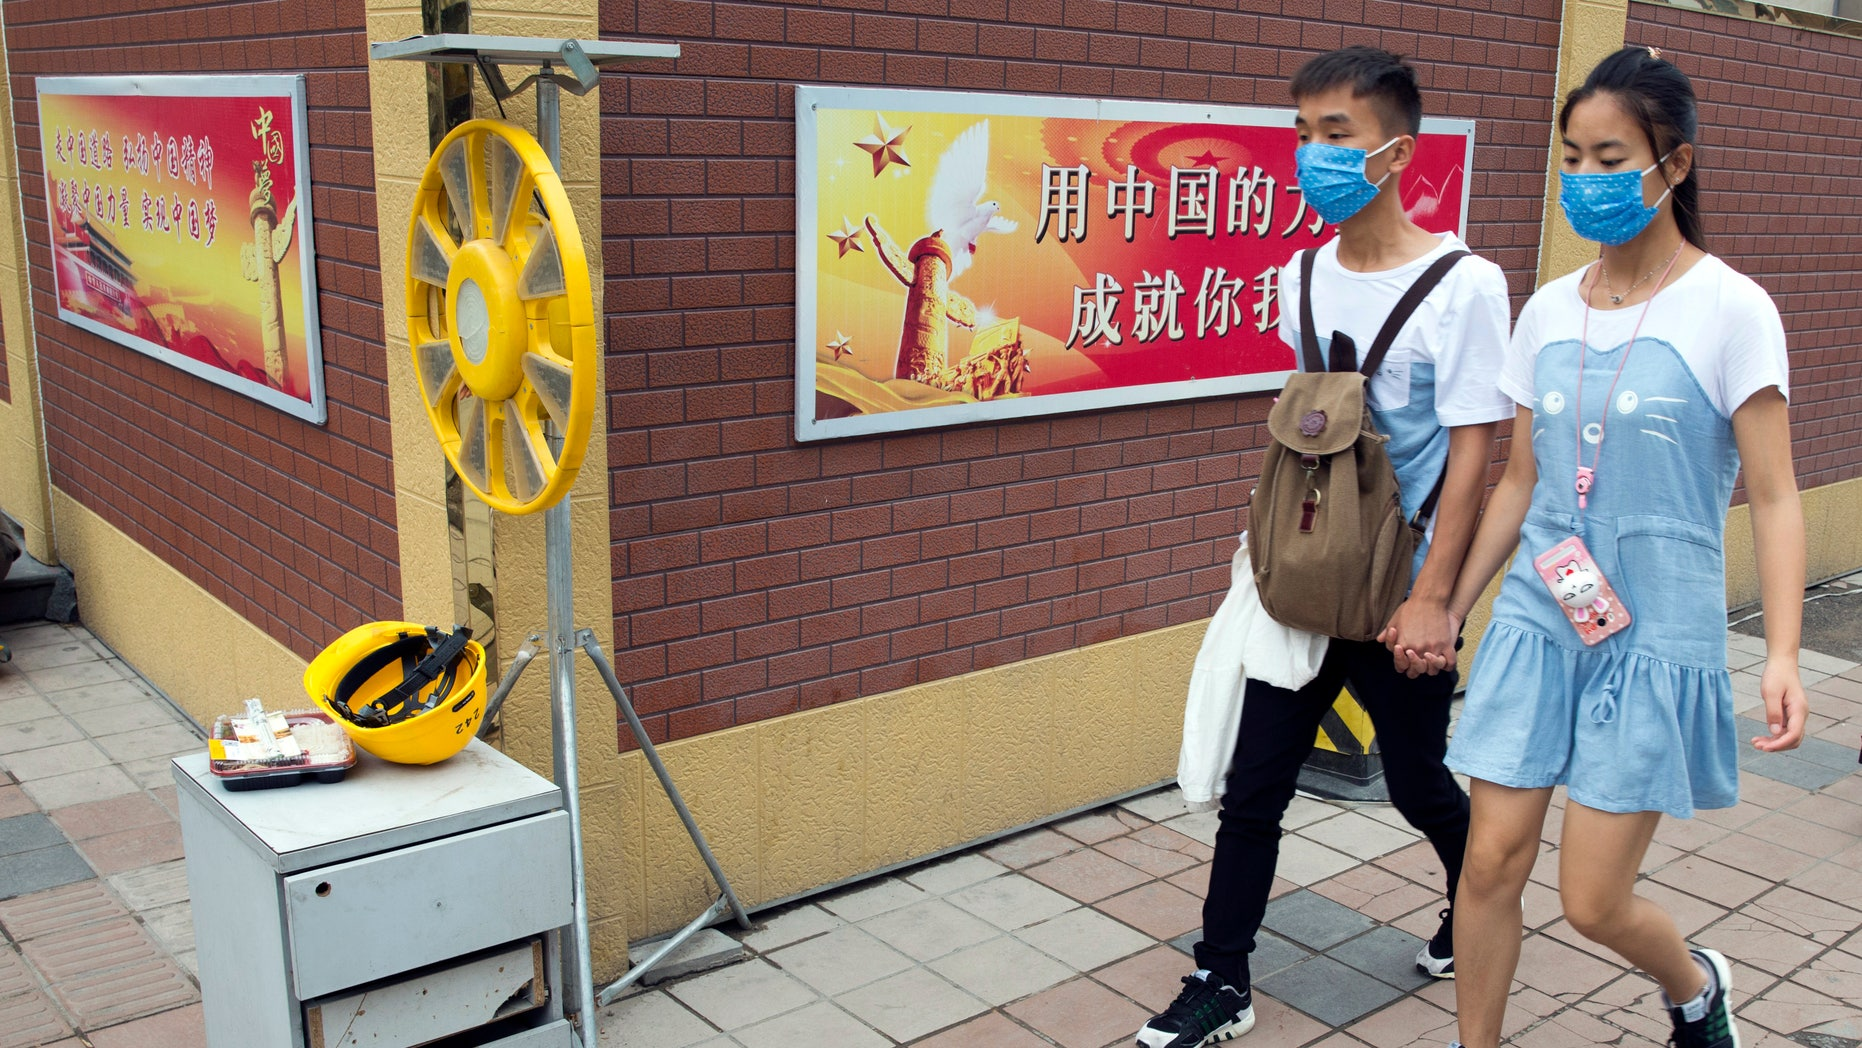 """In this Friday, July 15, 2016 photo, a Chinese couple wearing masks to protect against air pollution walk past a Chinese government propaganda slogan for the """"Chinese Dream"""" in Beijing. Beijing's notoriously awful air quality improved significantly in the first half of the year, with actions taken to curb the city's heavy pollution having a positive effect, officials in the Chinese capital said Monday, July 19, 2016. (AP Photo/Ng Han Guan)"""